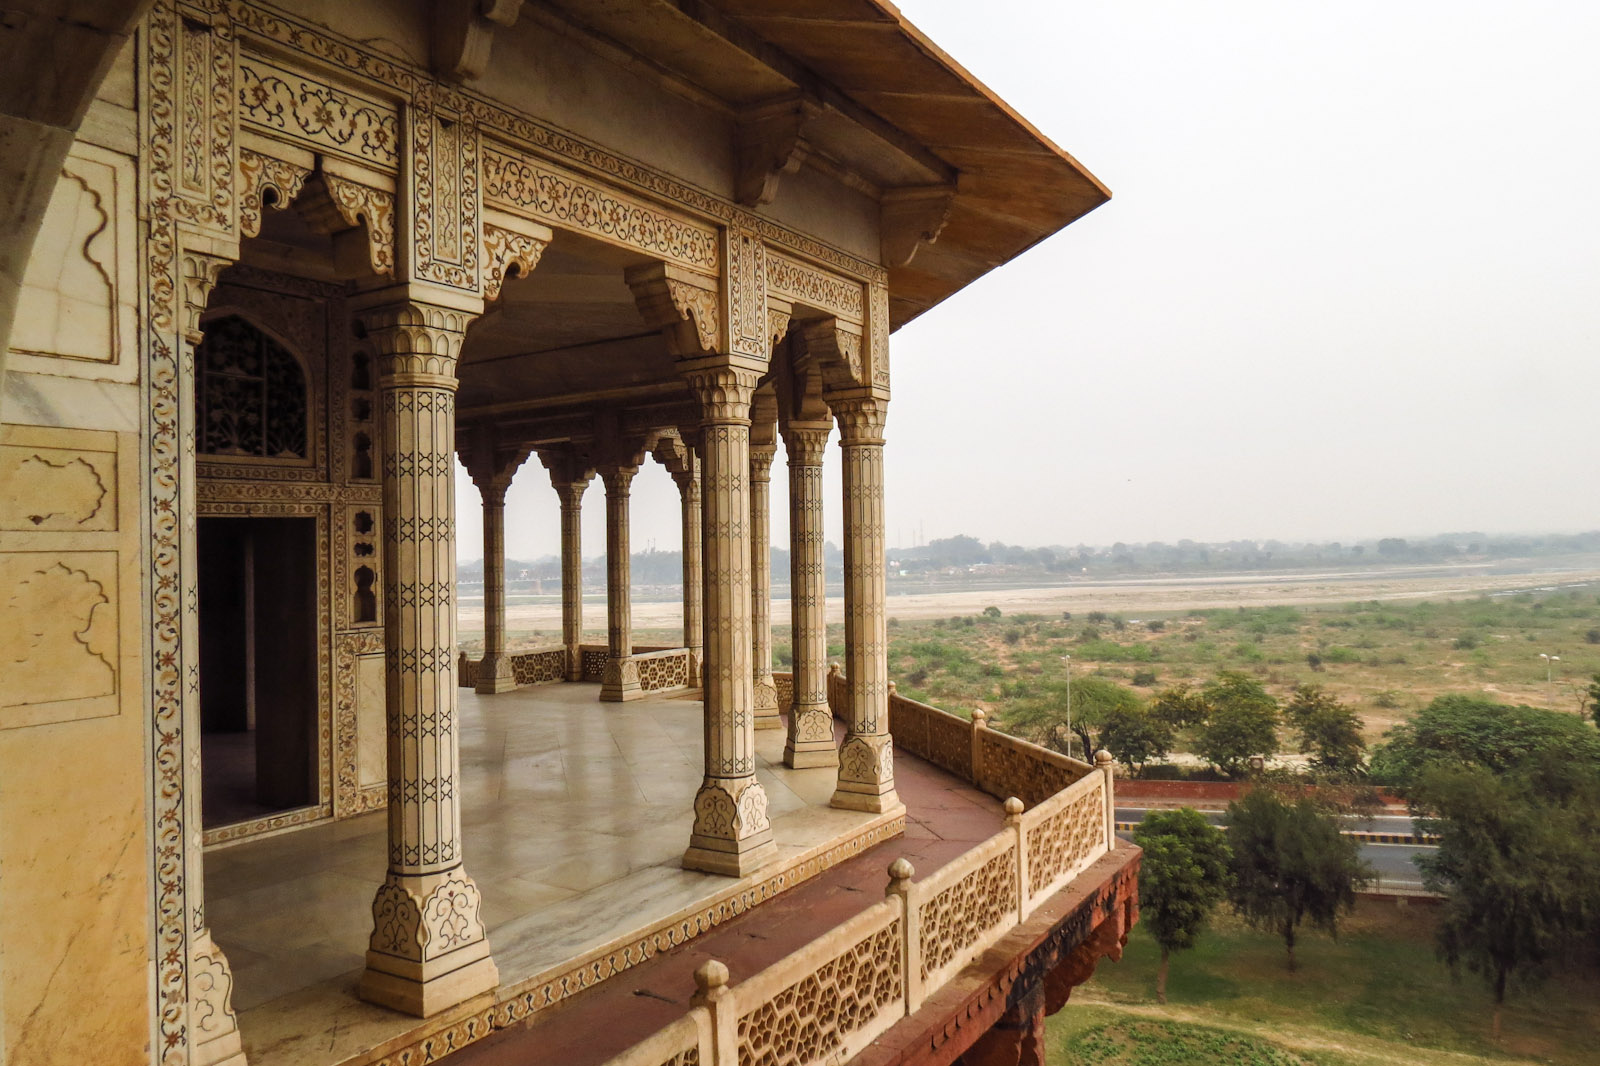 marble-pillars-agra-fort